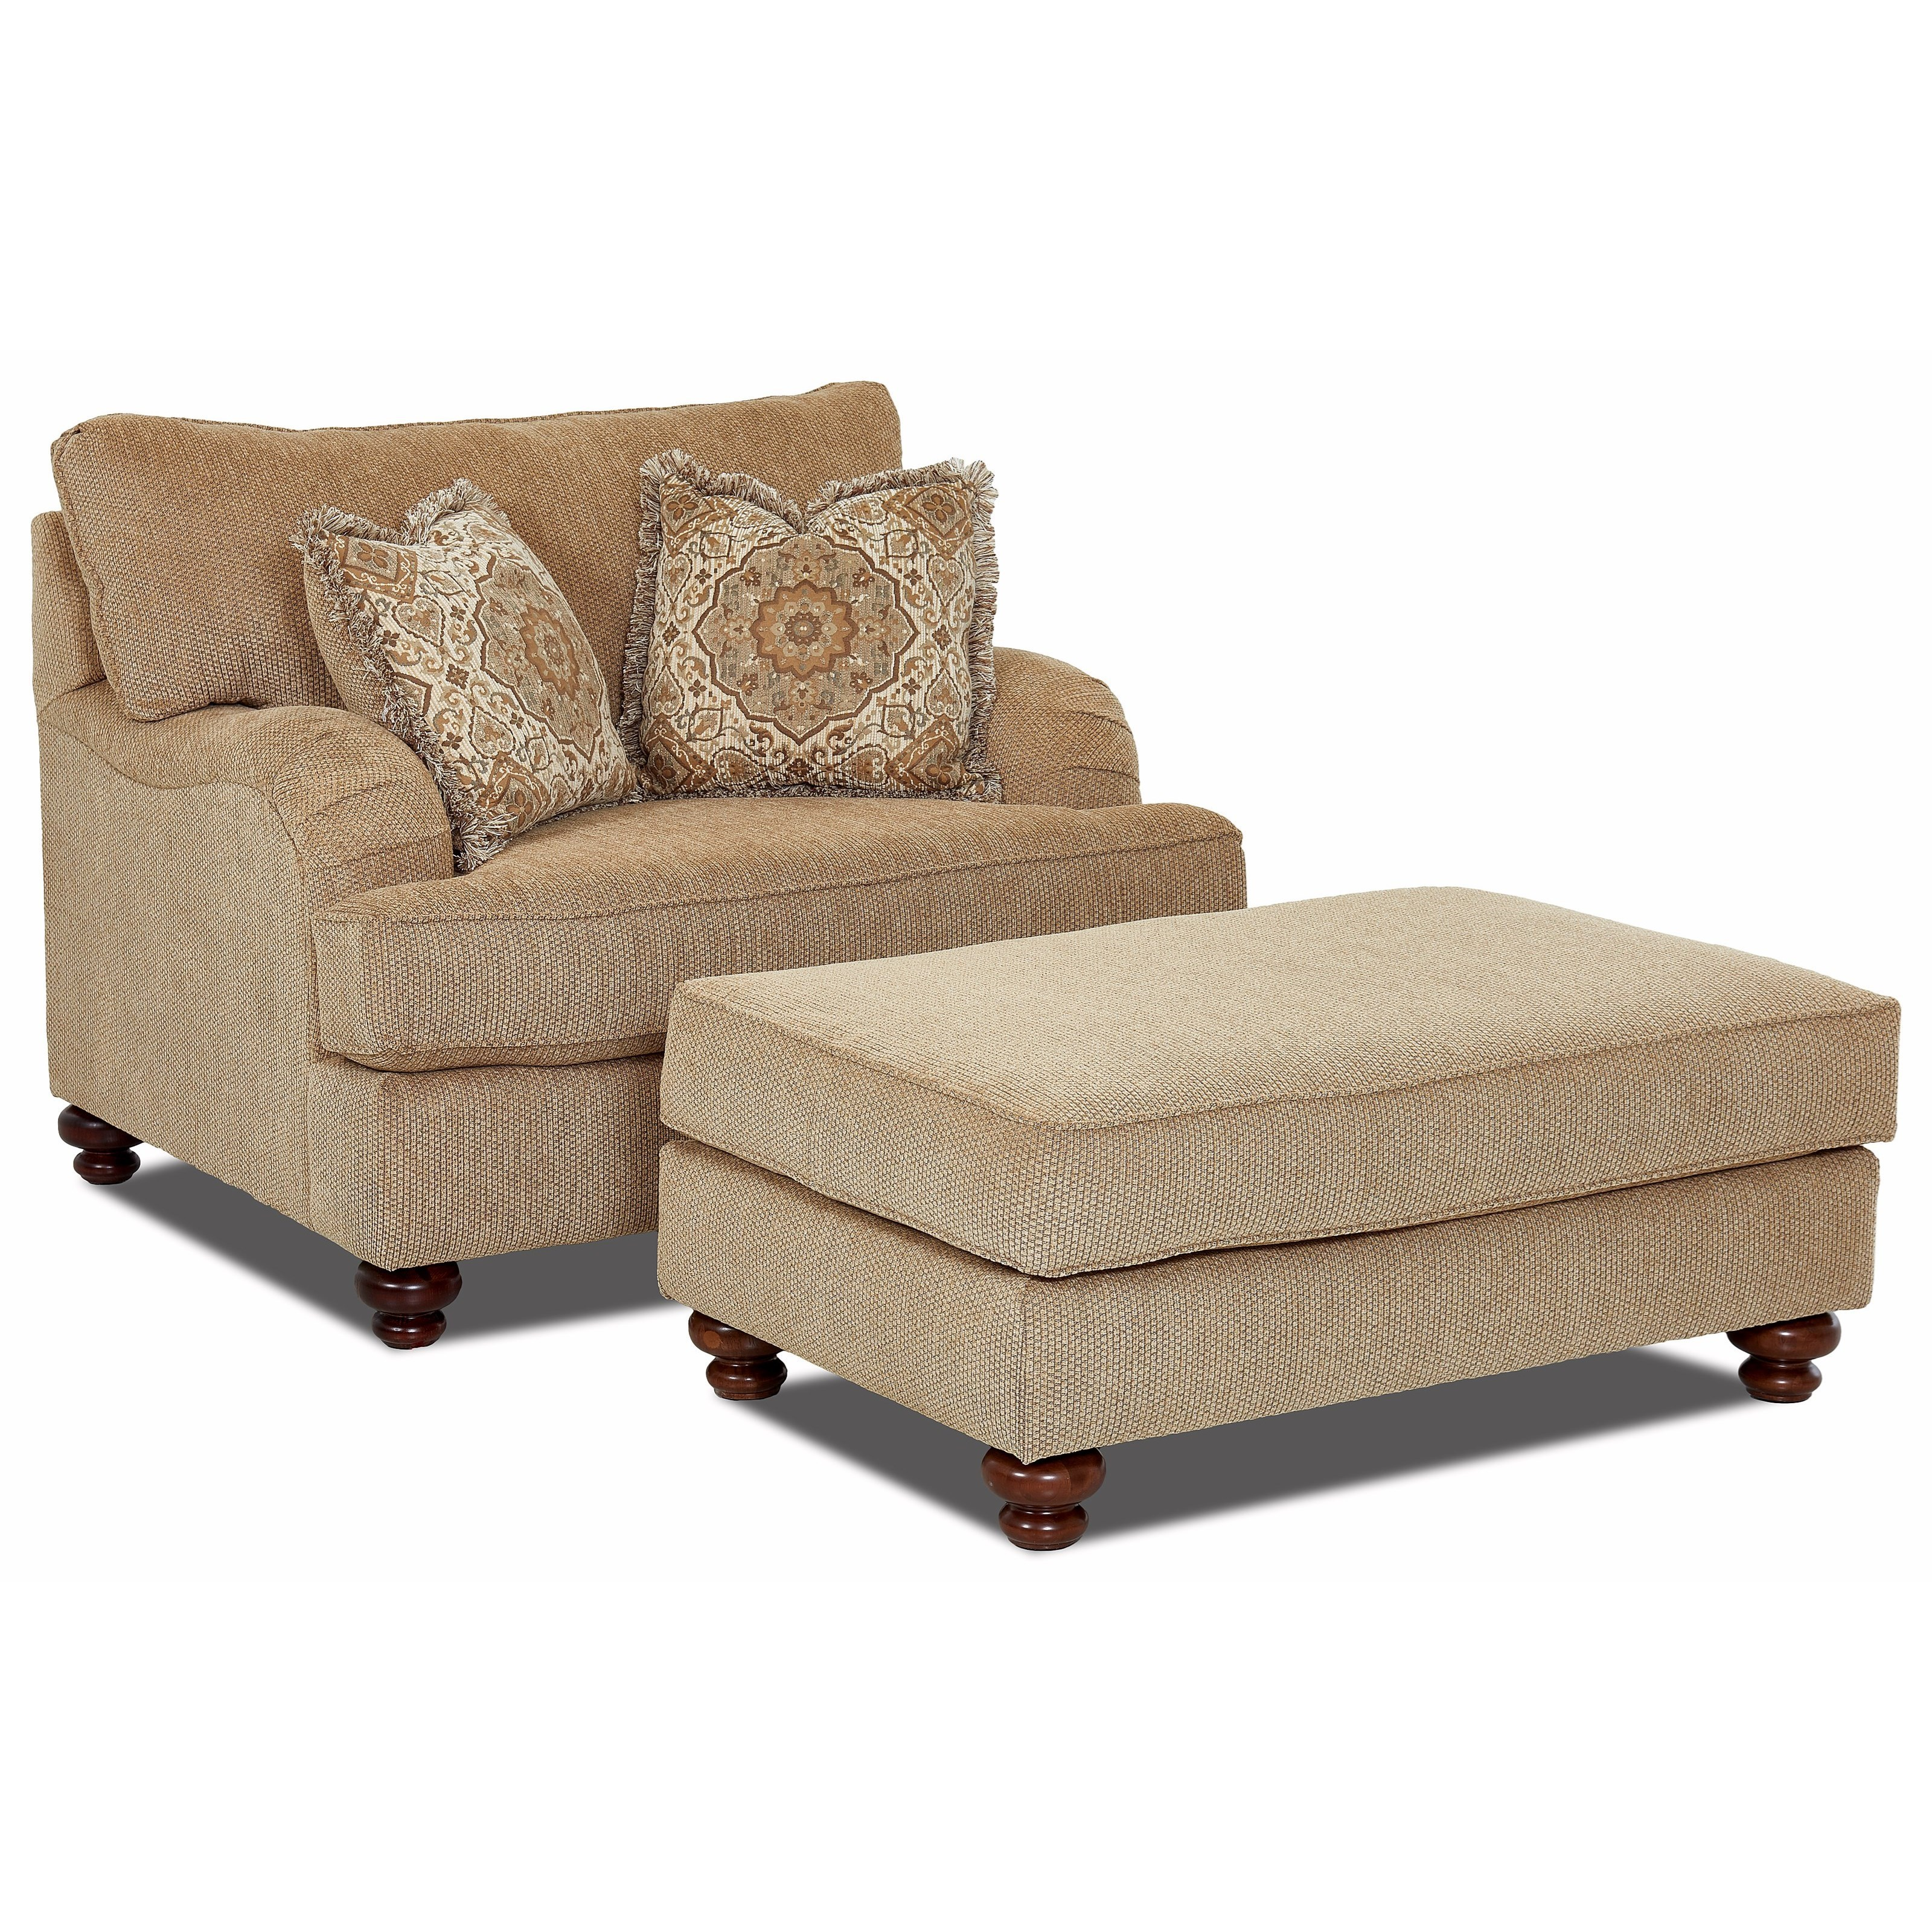 Klaussner Declan Oversized Chair and Ottoman Set - Pilgrim Furniture City - Chair u0026 Ottoman Sets